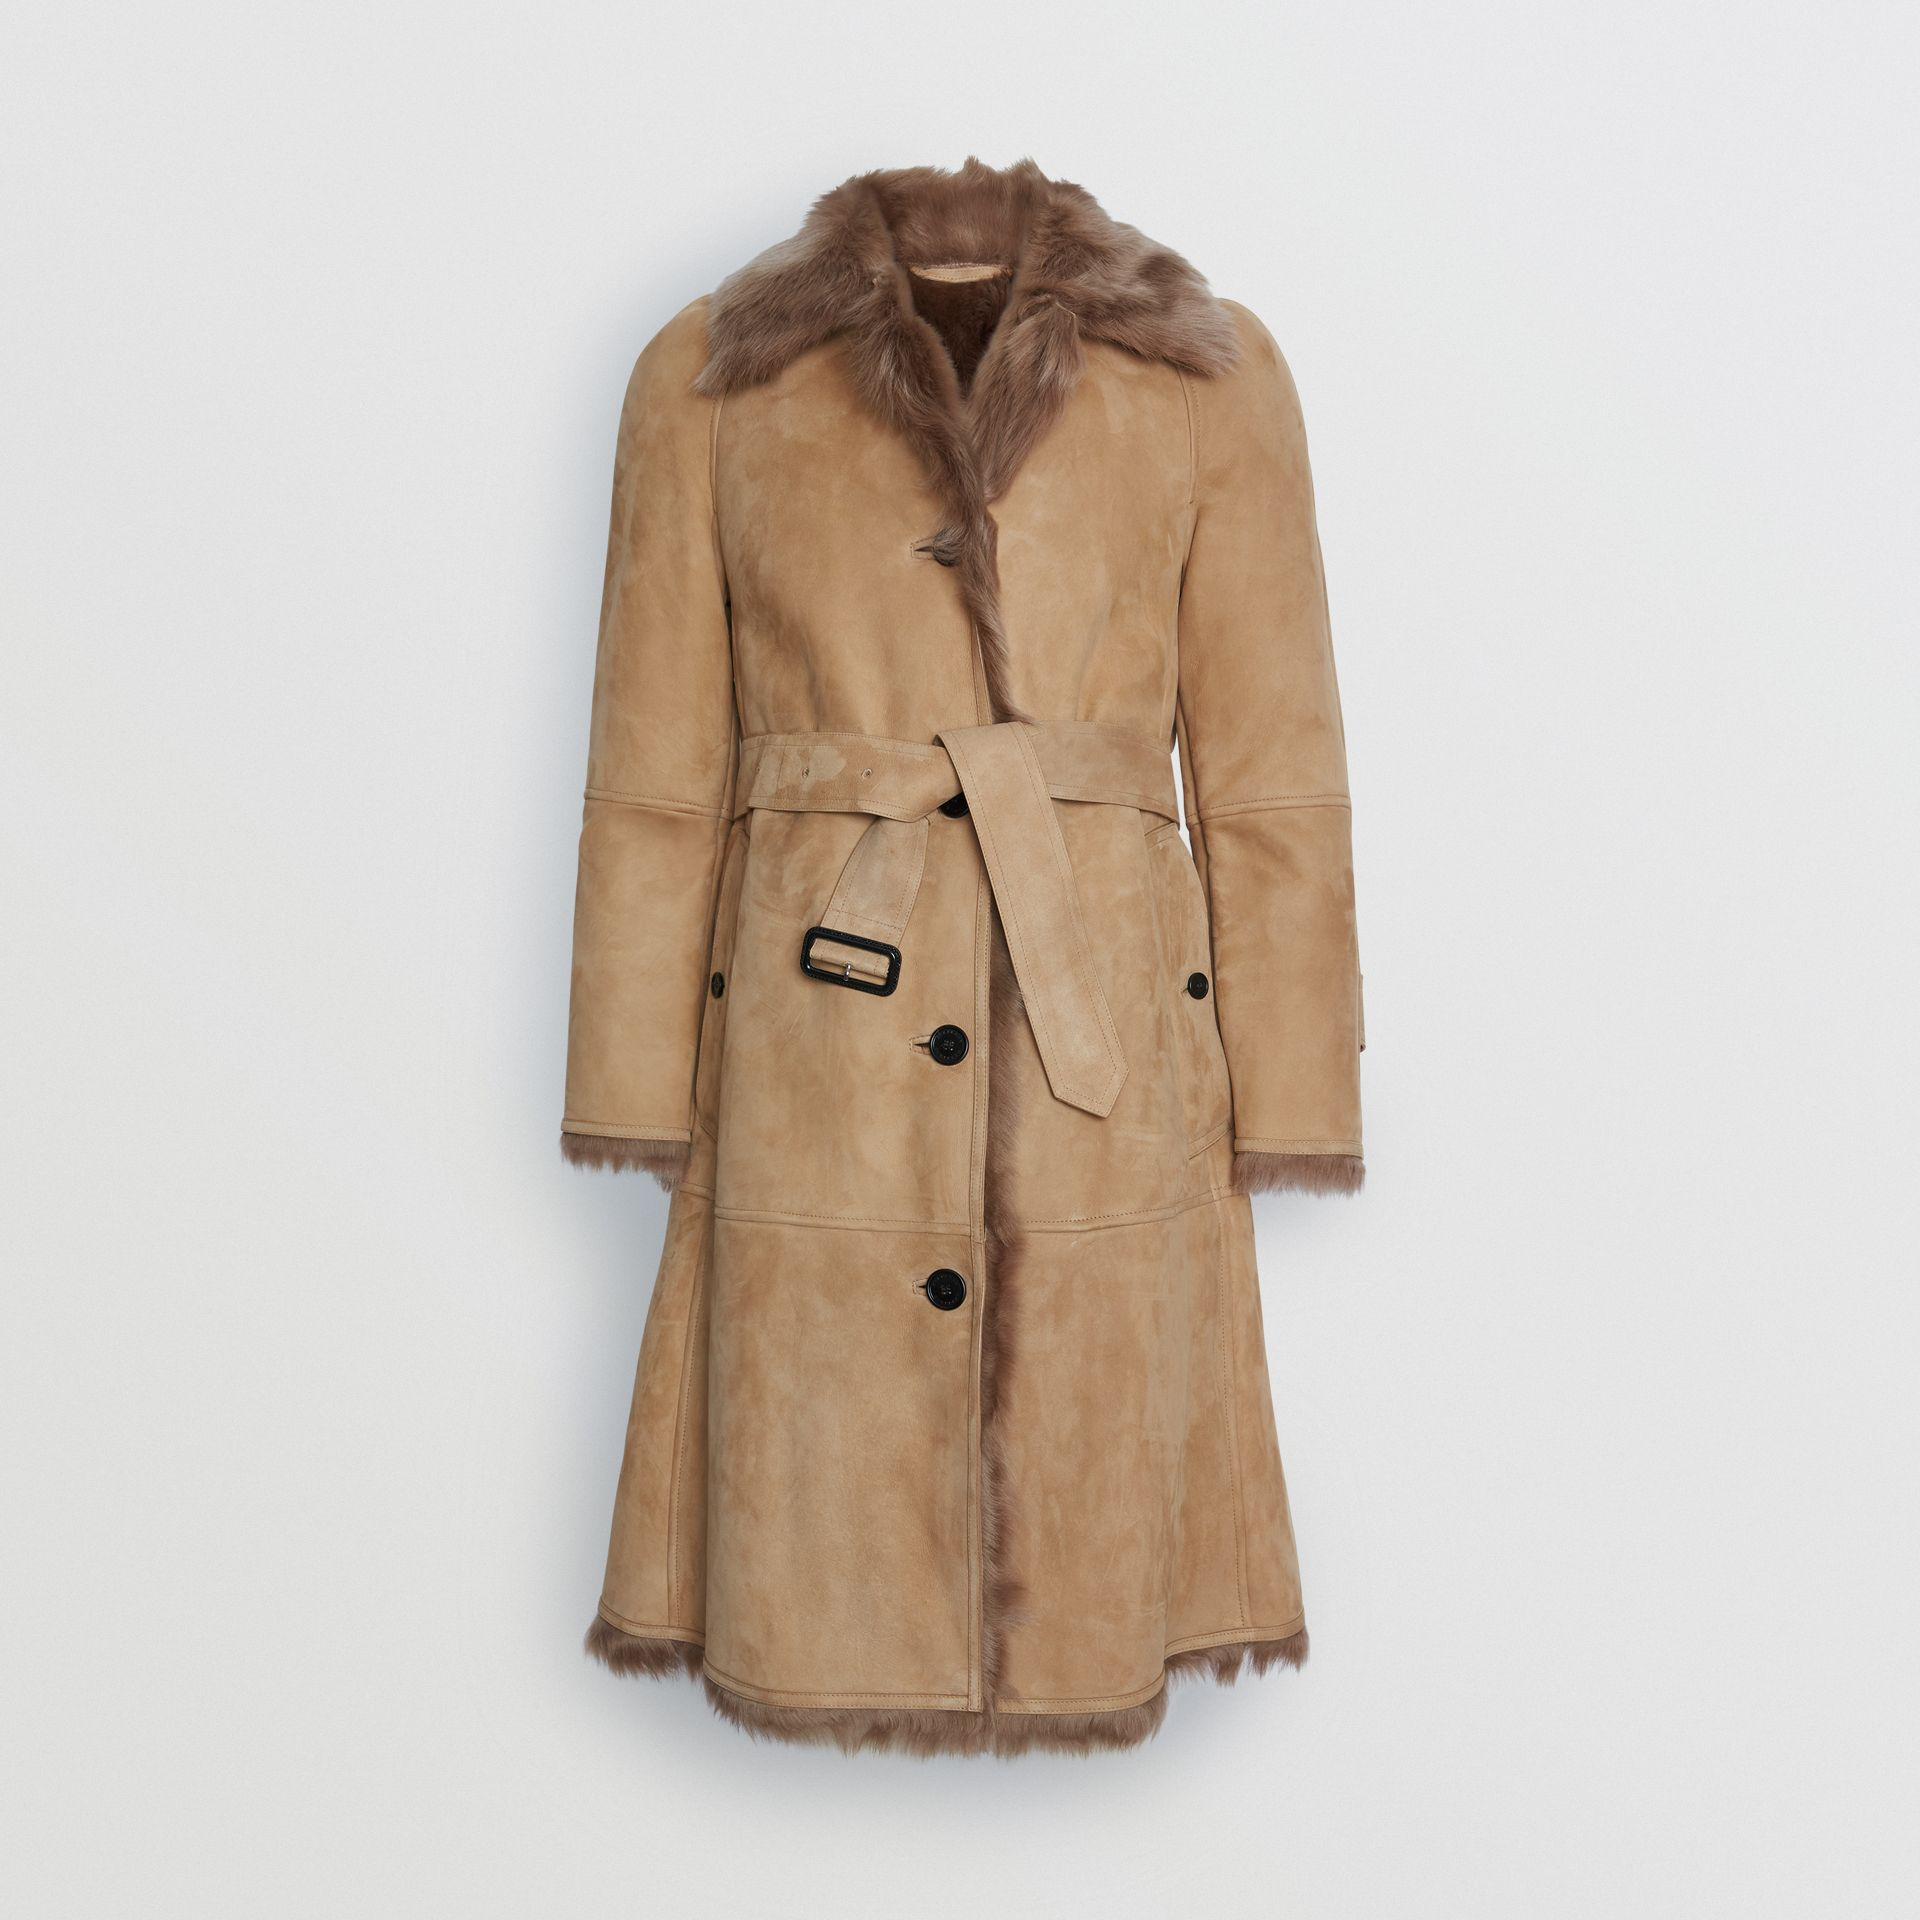 Shearling Car Coat in Camel - Women | Burberry United States - gallery image 3